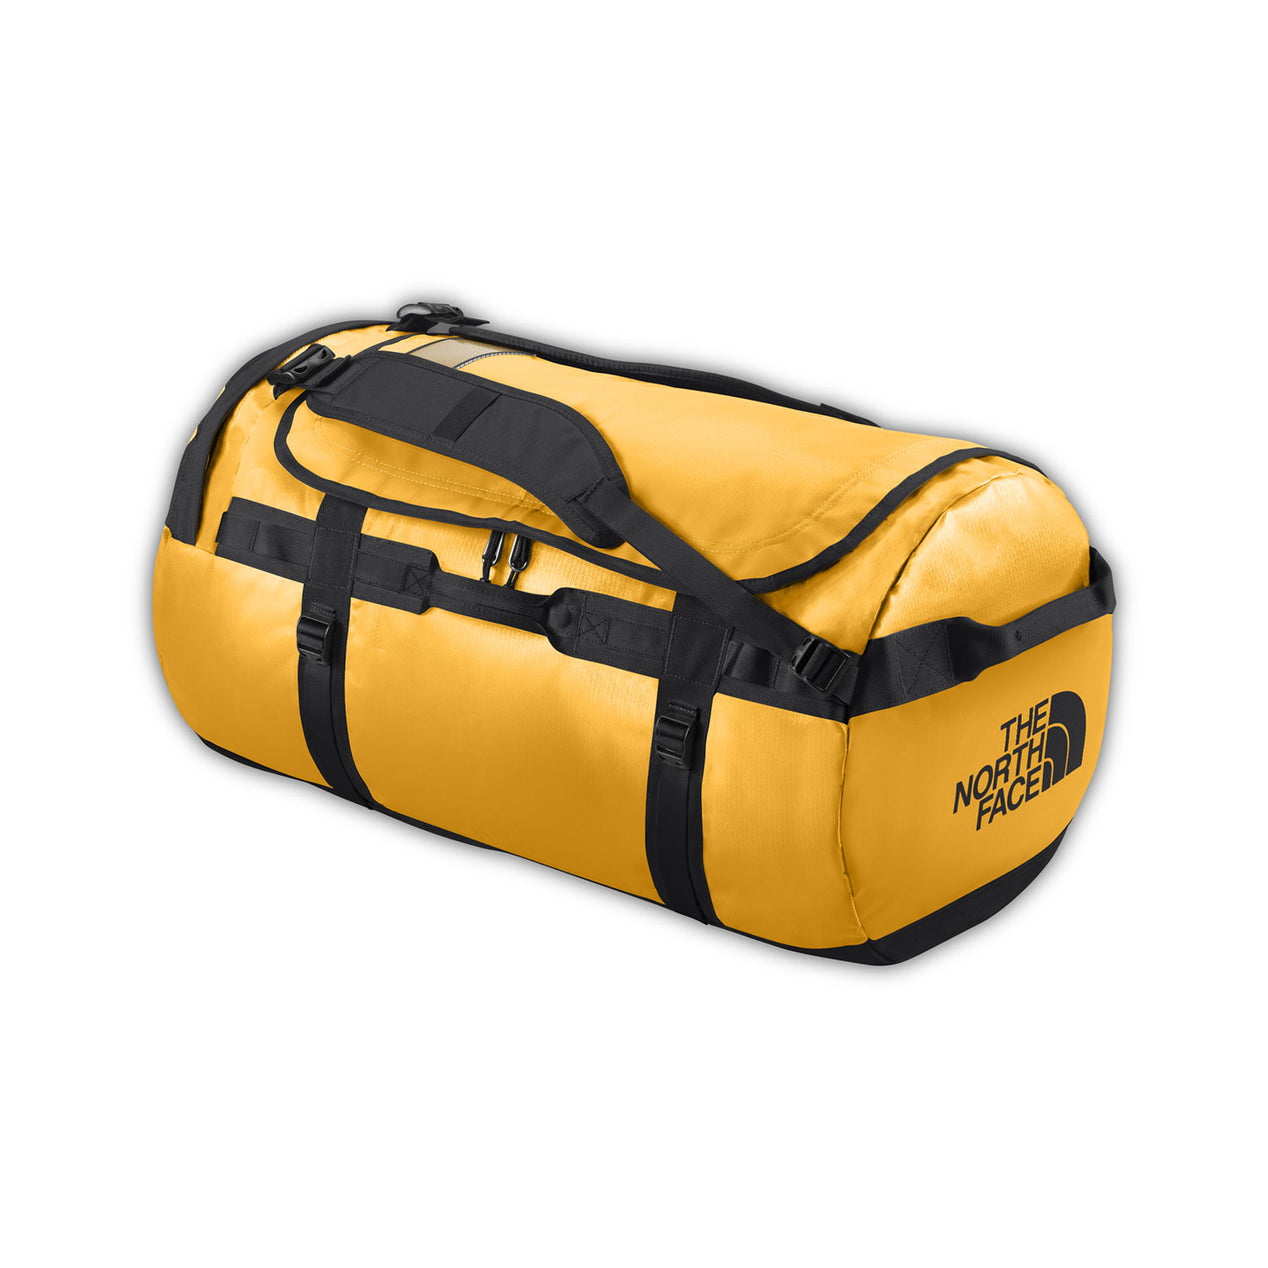 f5fbee23810 The North Face Base Camp Duffel - M